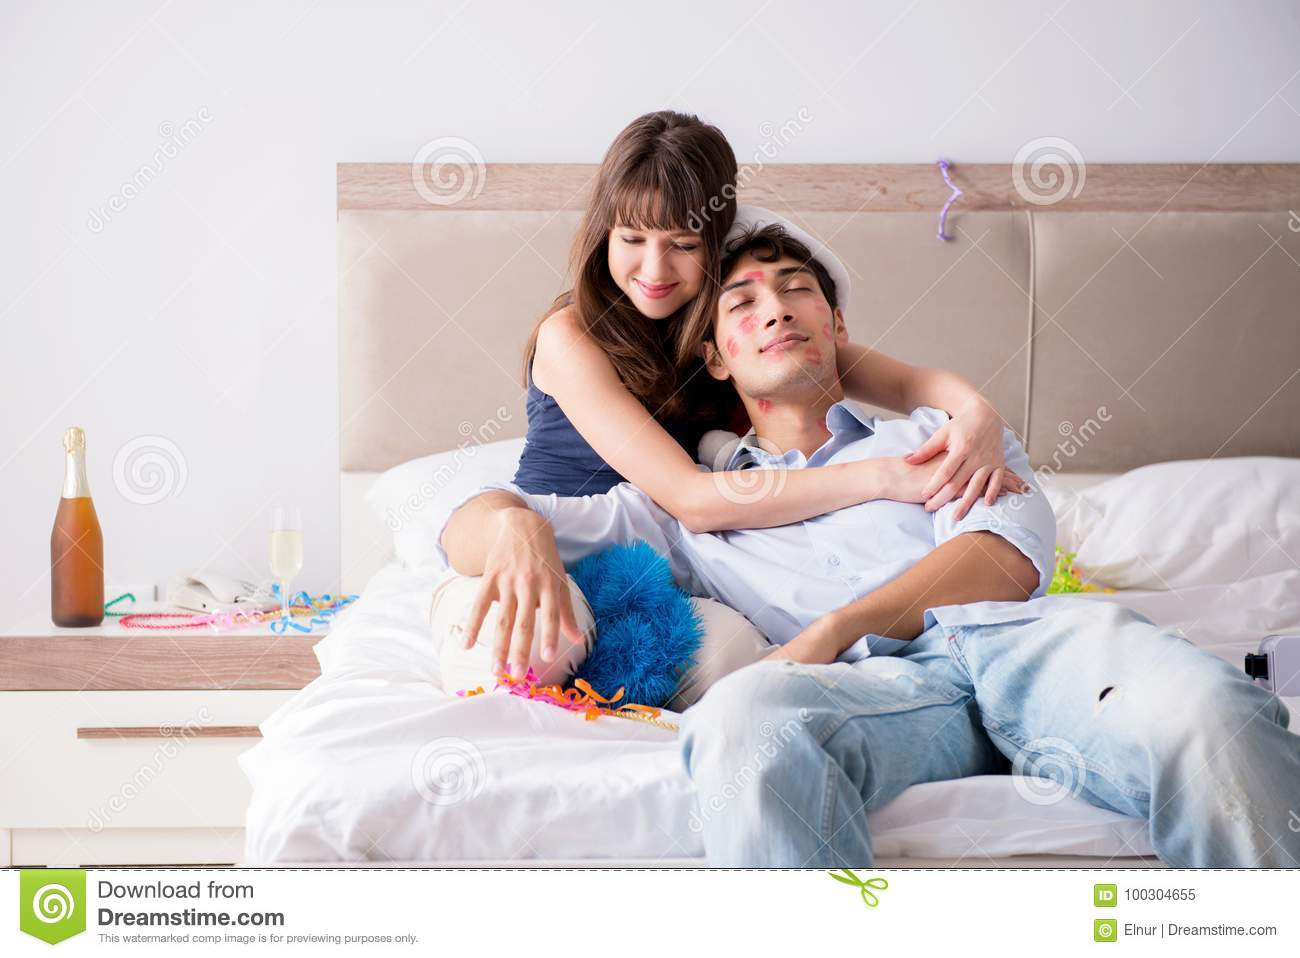 The young couple partying in the bed